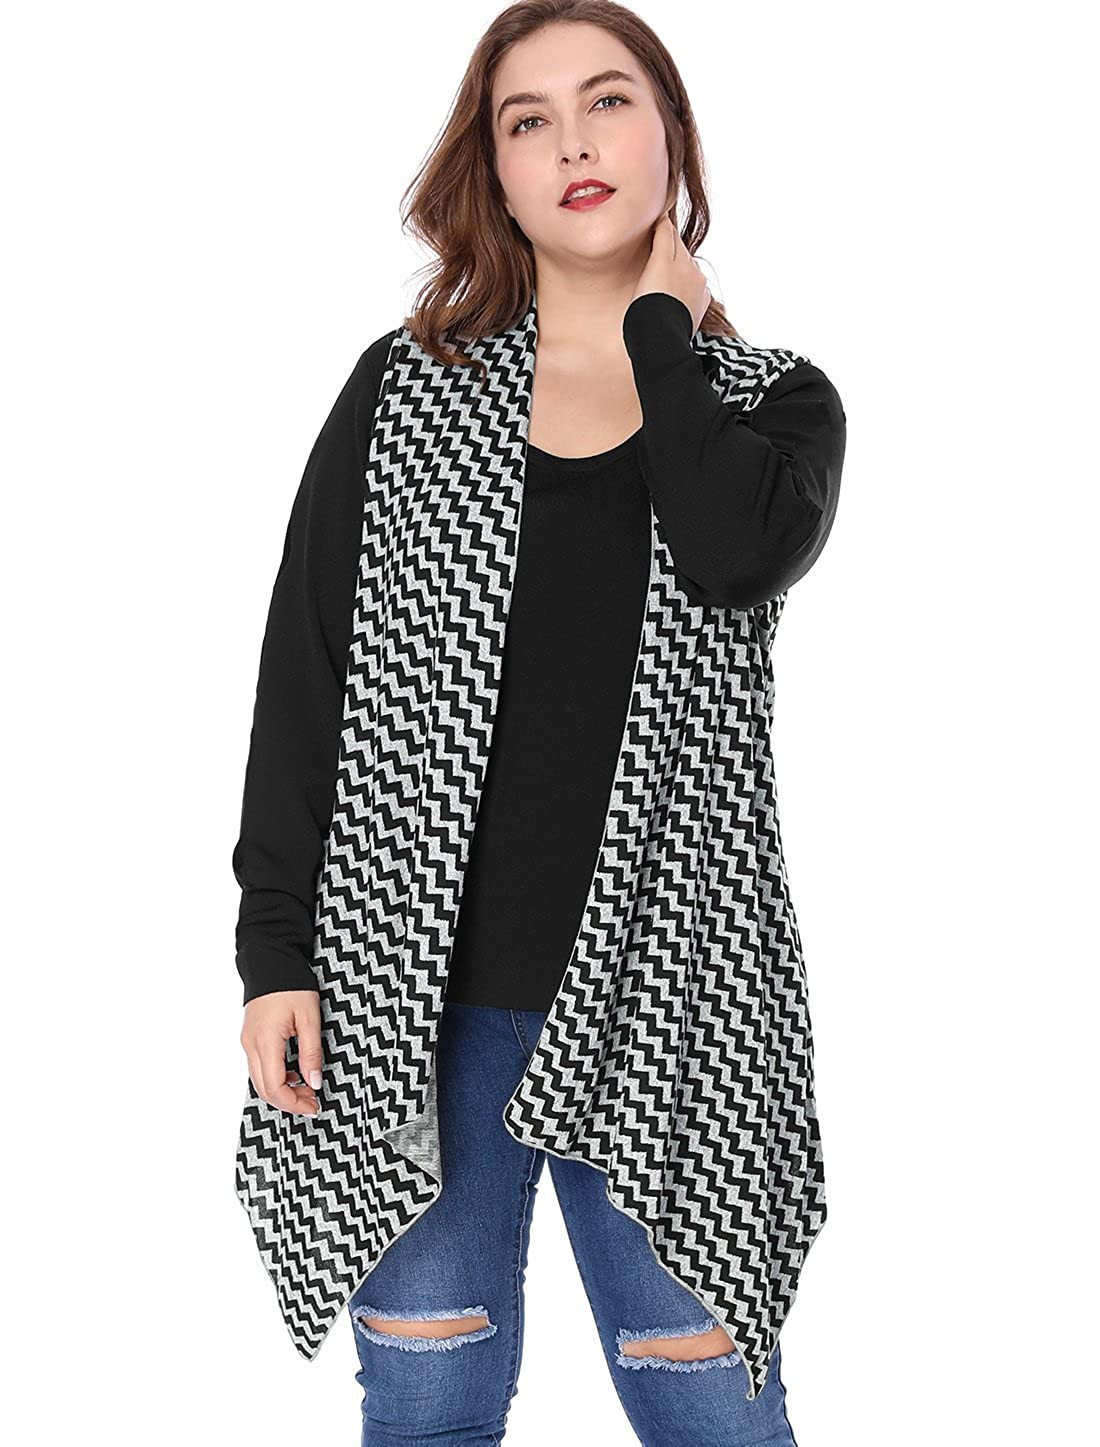 Agnes Orinda Women's Plus Size Patterned Asymmetrical Sleeveless Knit Cardigan s18040900it0354